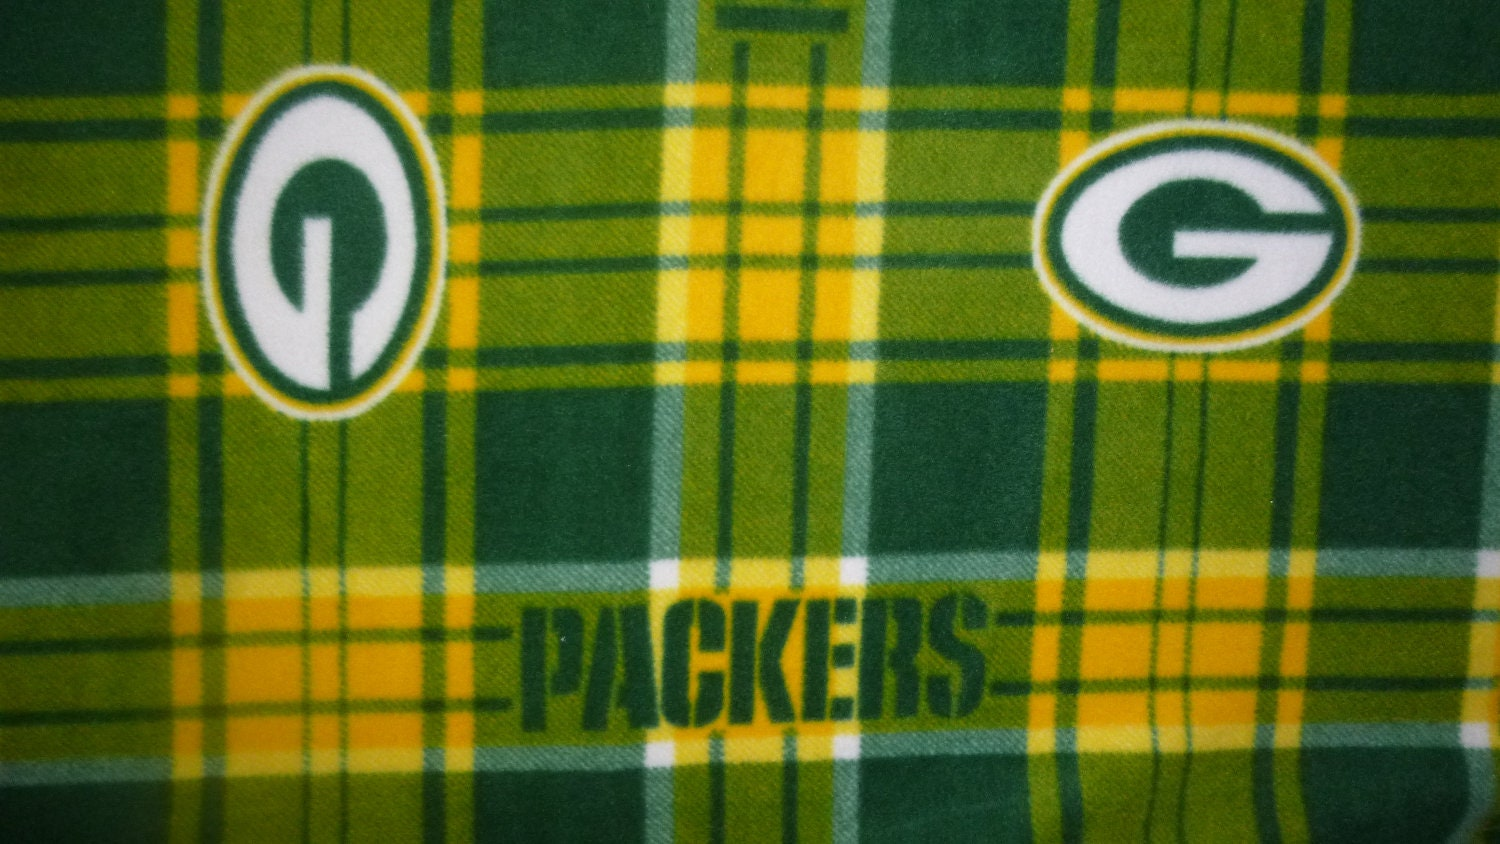 Large Adult Size Green Bay Packers Fleece Blanket No Sew